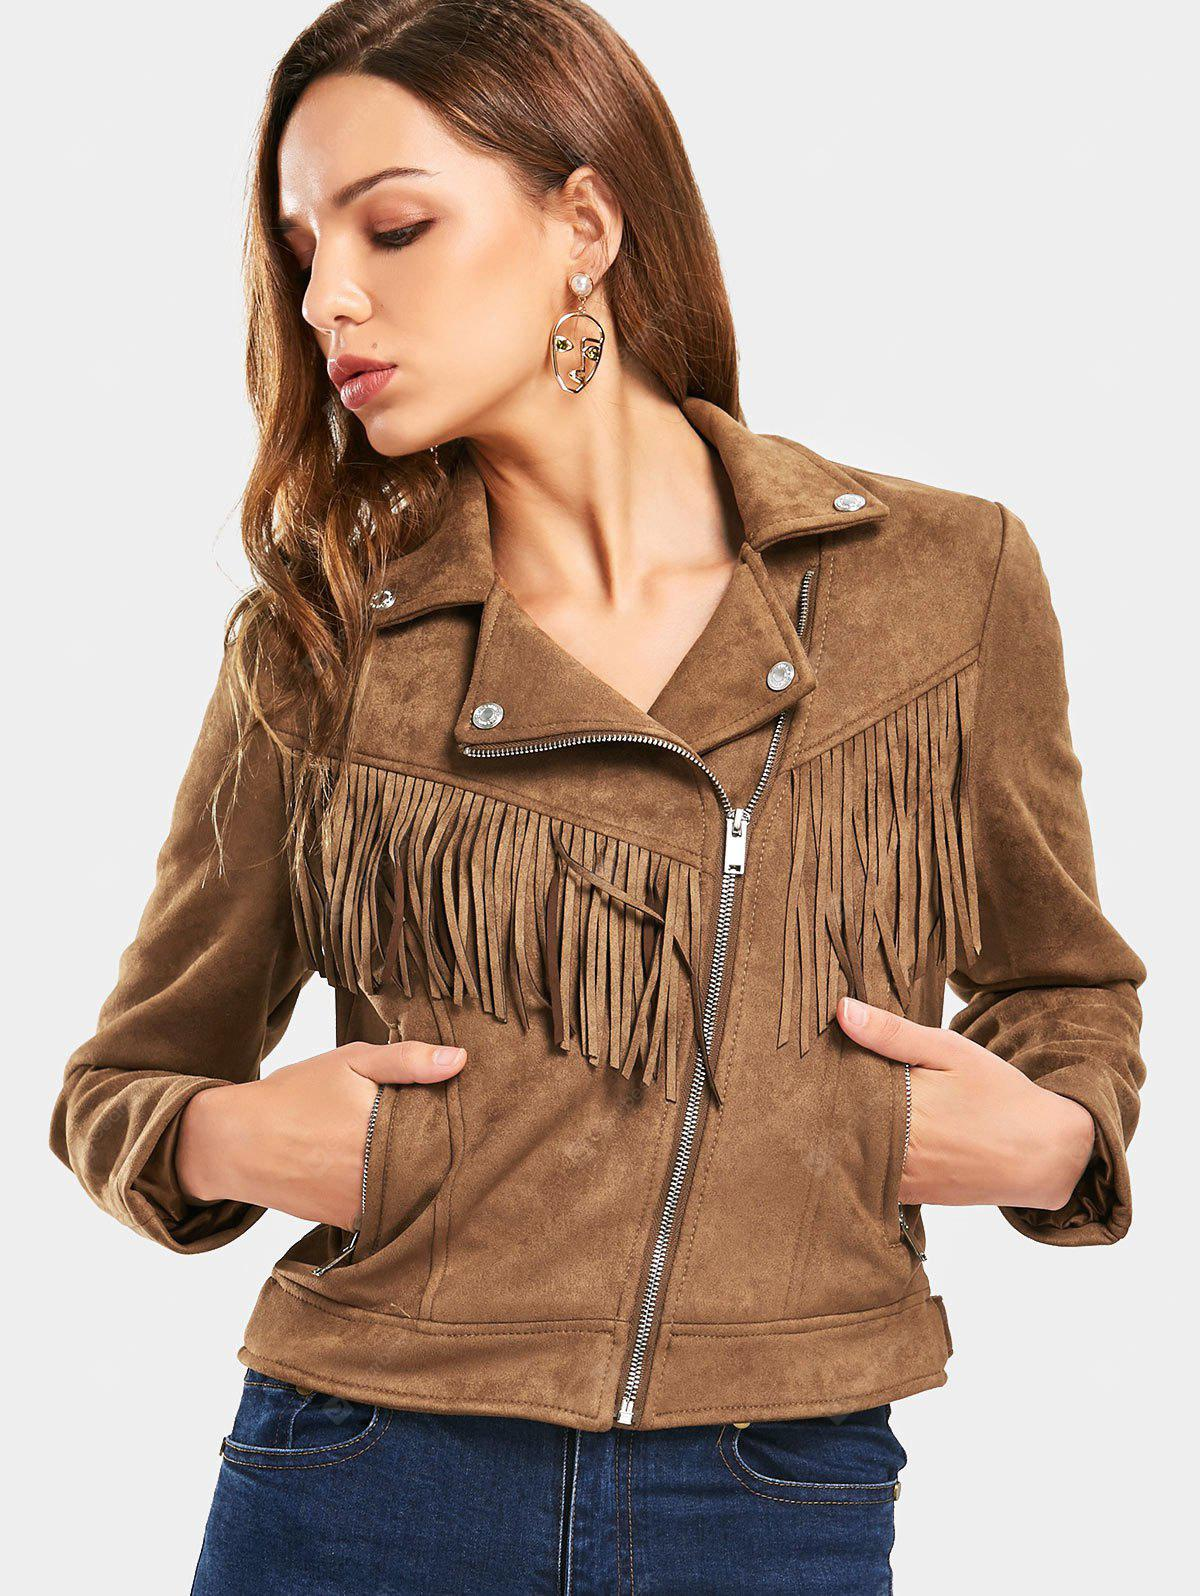 Fringed Faux Suede Zip Up Cropped Jacket